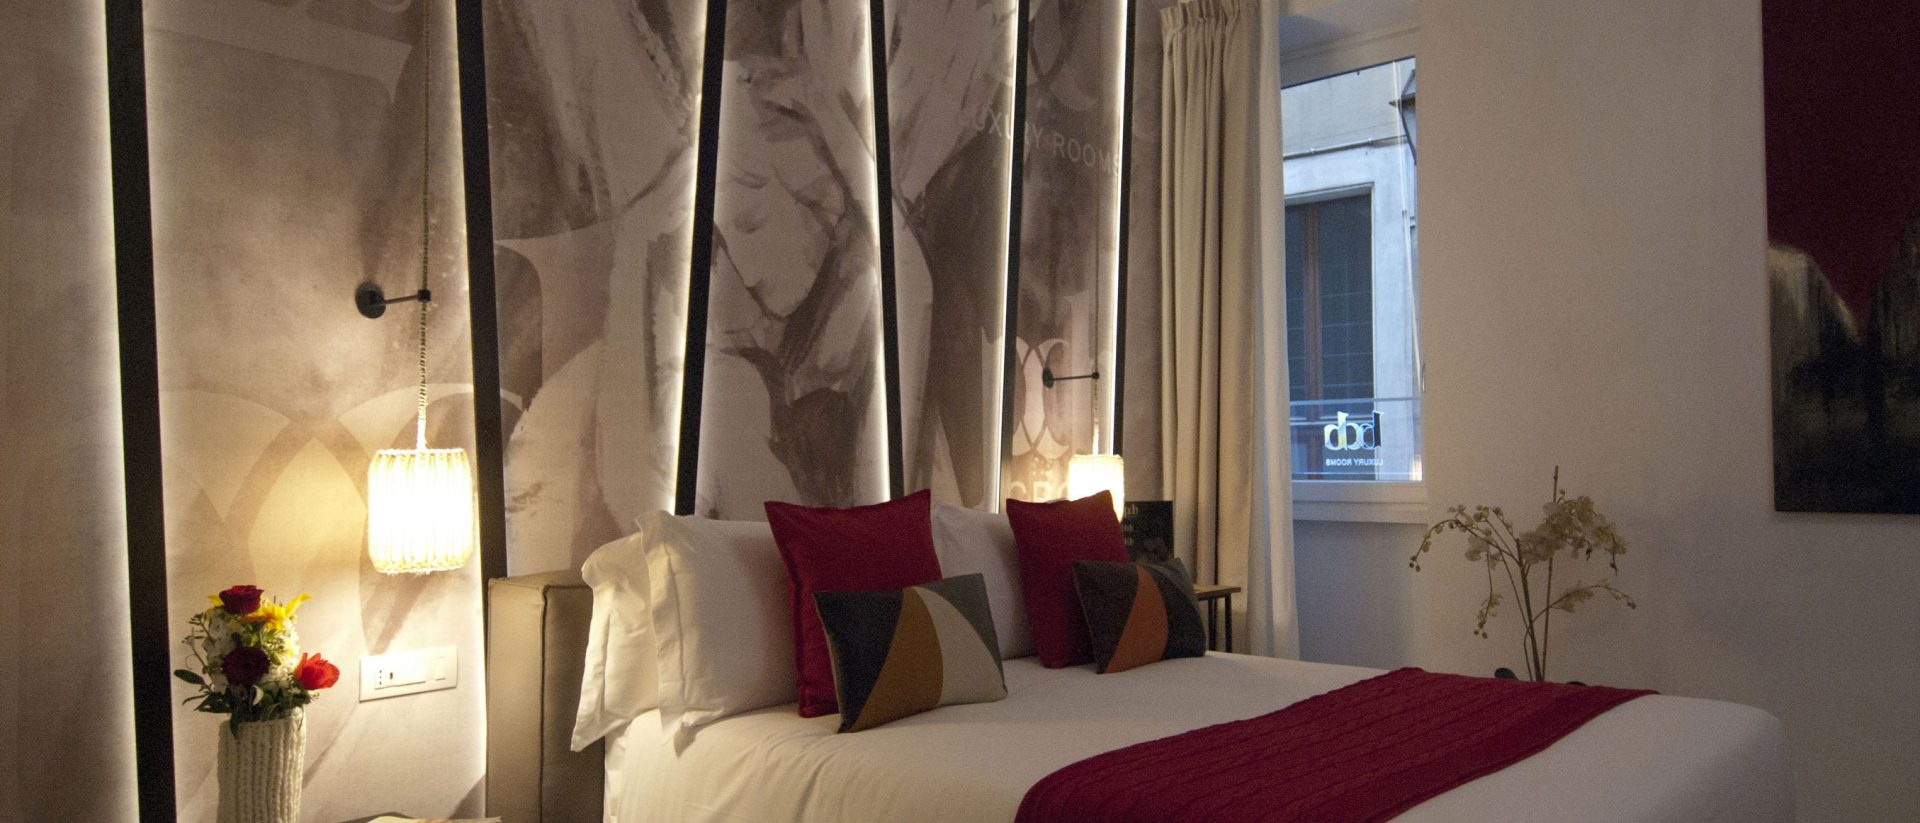 BDB Luxury Rooms Navona Angeli | Luxury room in Rome in Piazza Navona